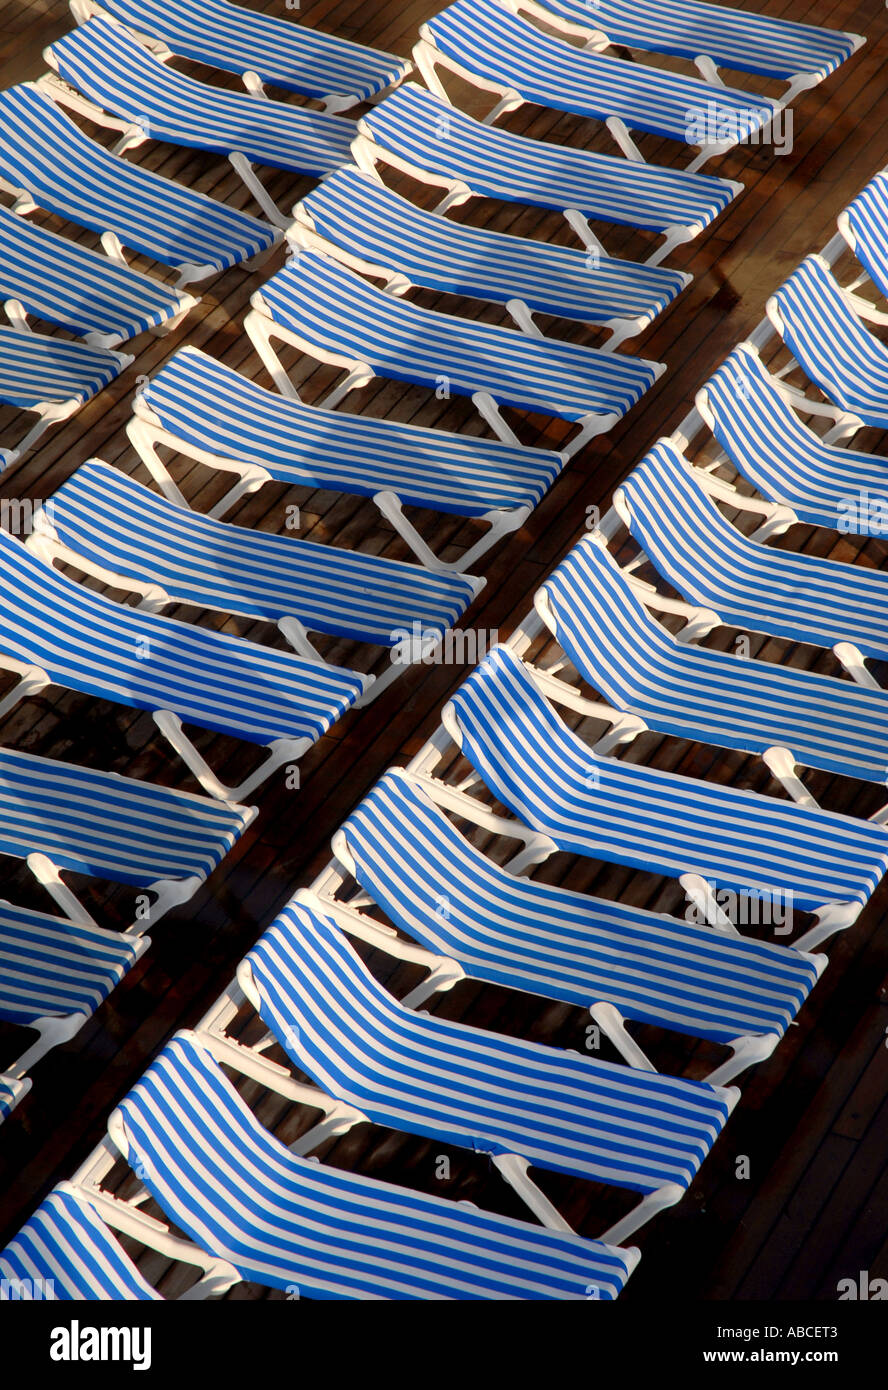 Astonishing Lounge Deck Pool Chairs Empty Blue White Stripes Stock Photo Cjindustries Chair Design For Home Cjindustriesco